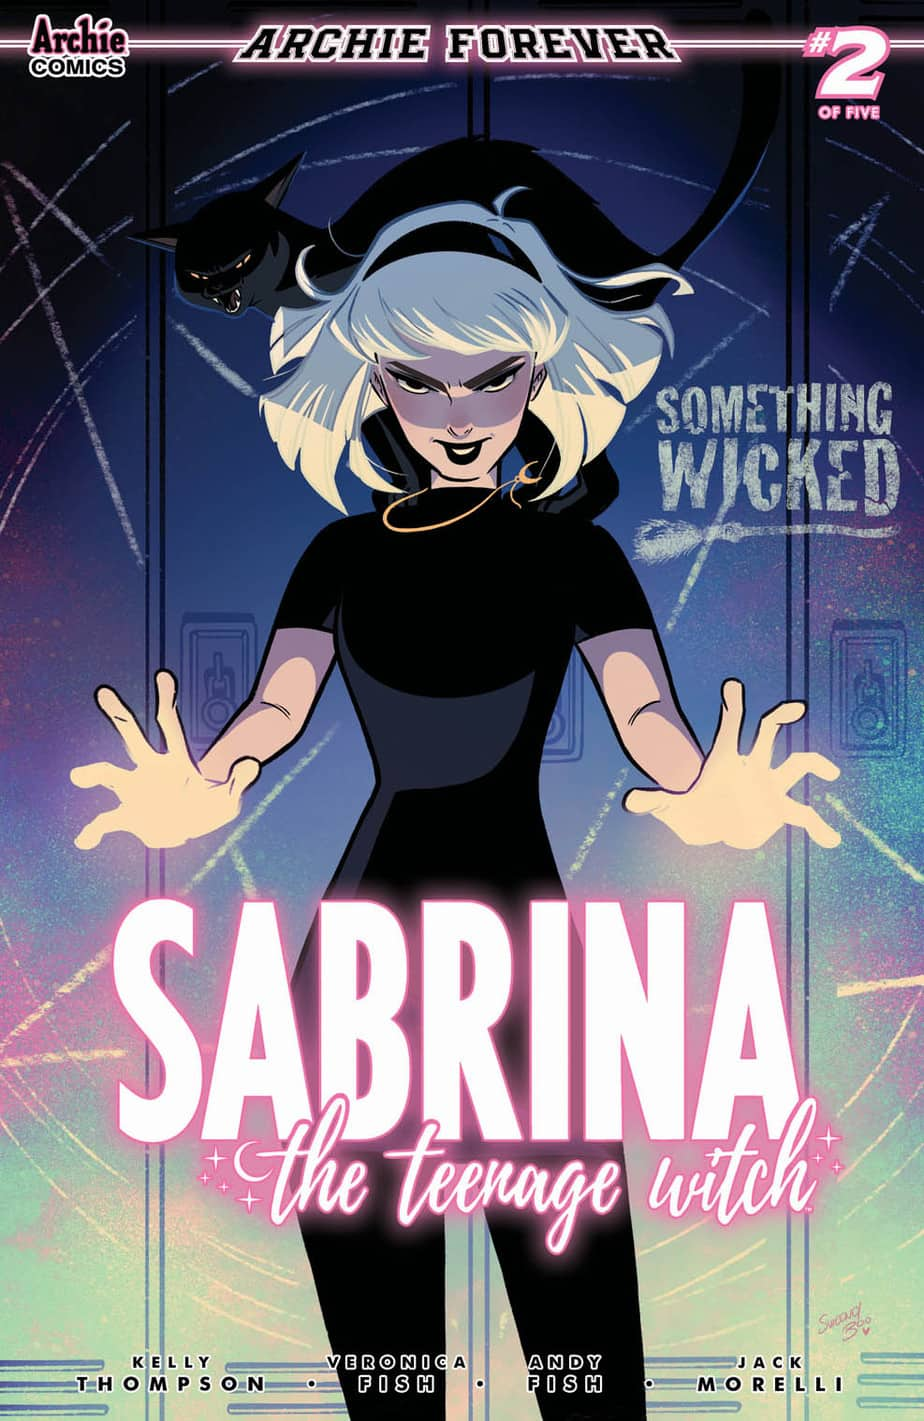 Sabrina The Teenage Witch Something Wicked #2 - Cover B